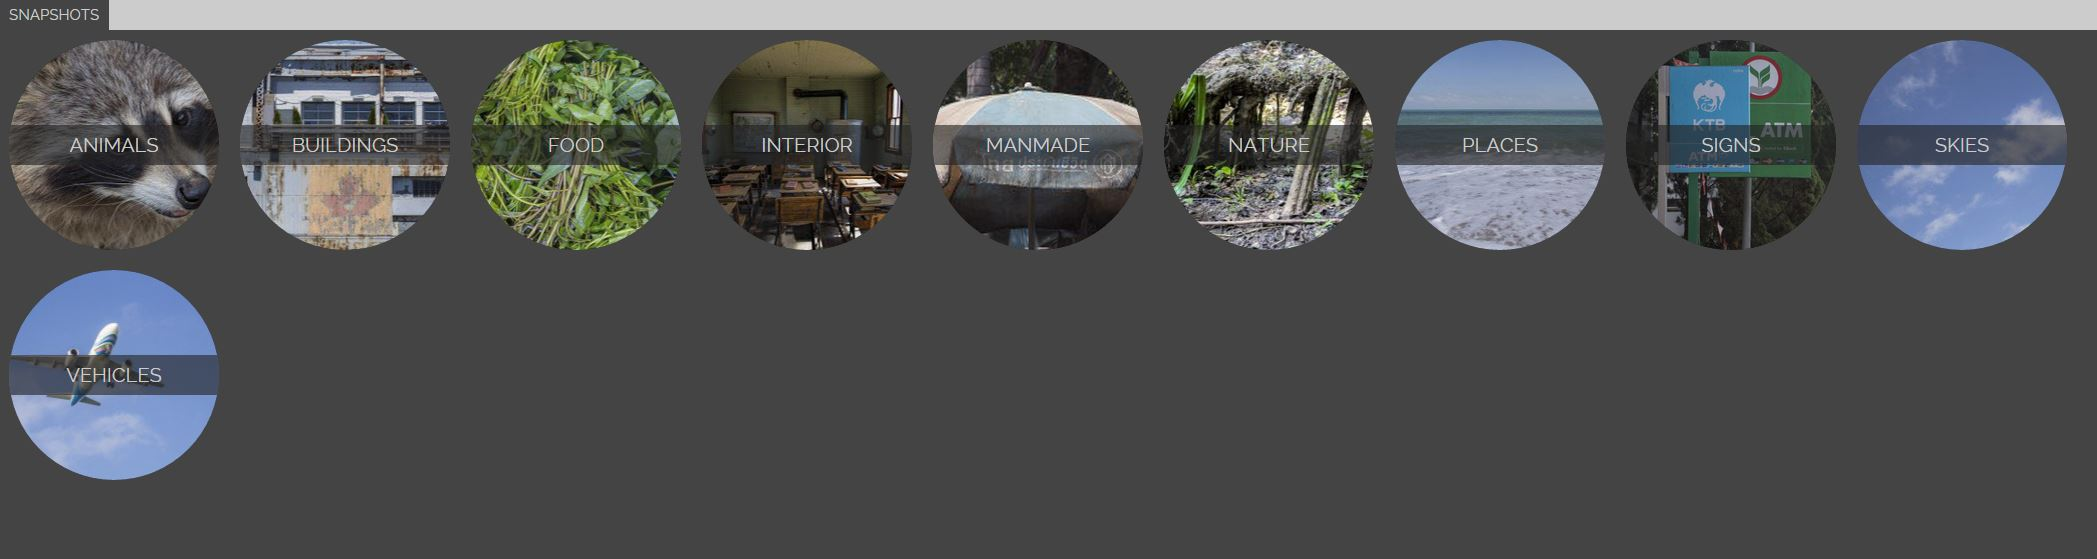 Circular category navigation eludes to circular iconography throughout the site.